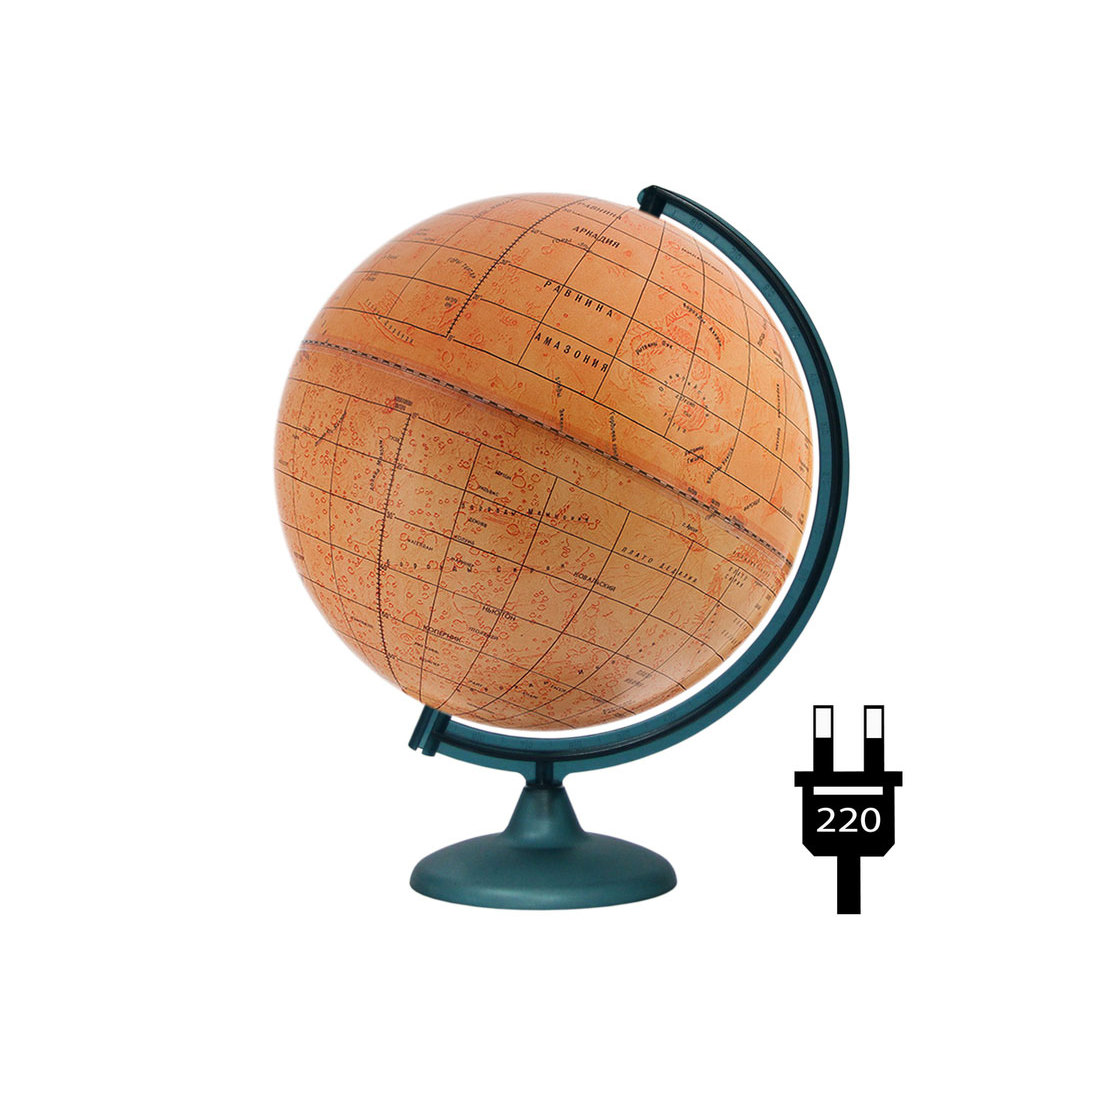 Mars Globe With A Diameter Of 320mm, With Illumination